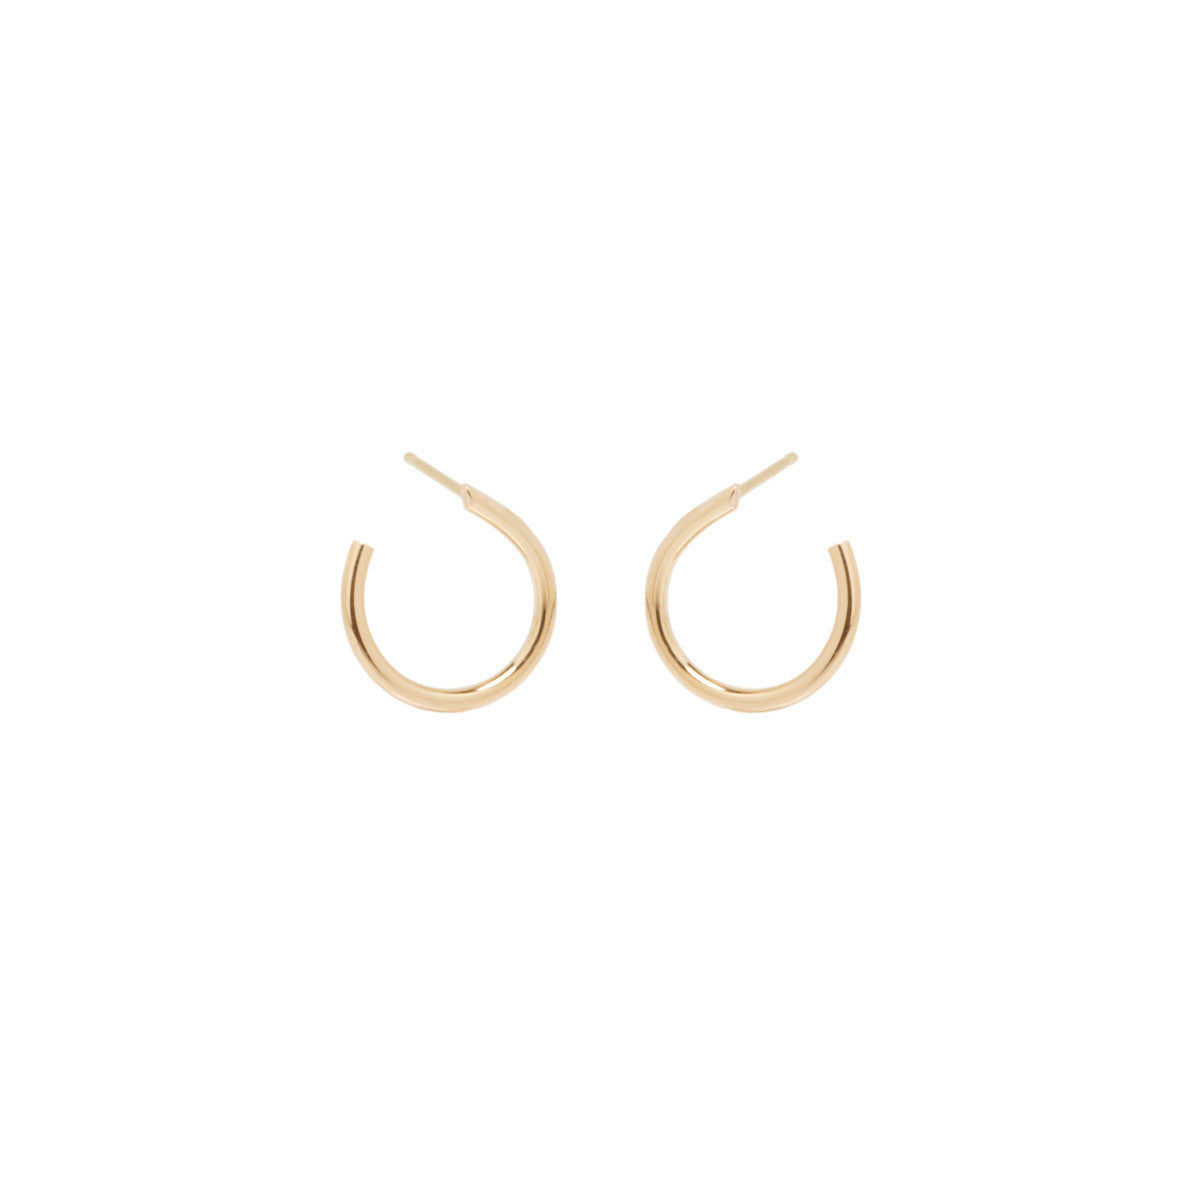 Zoë Chicco 14kt Yellow Gold Front to Back Small Hoop Earrings